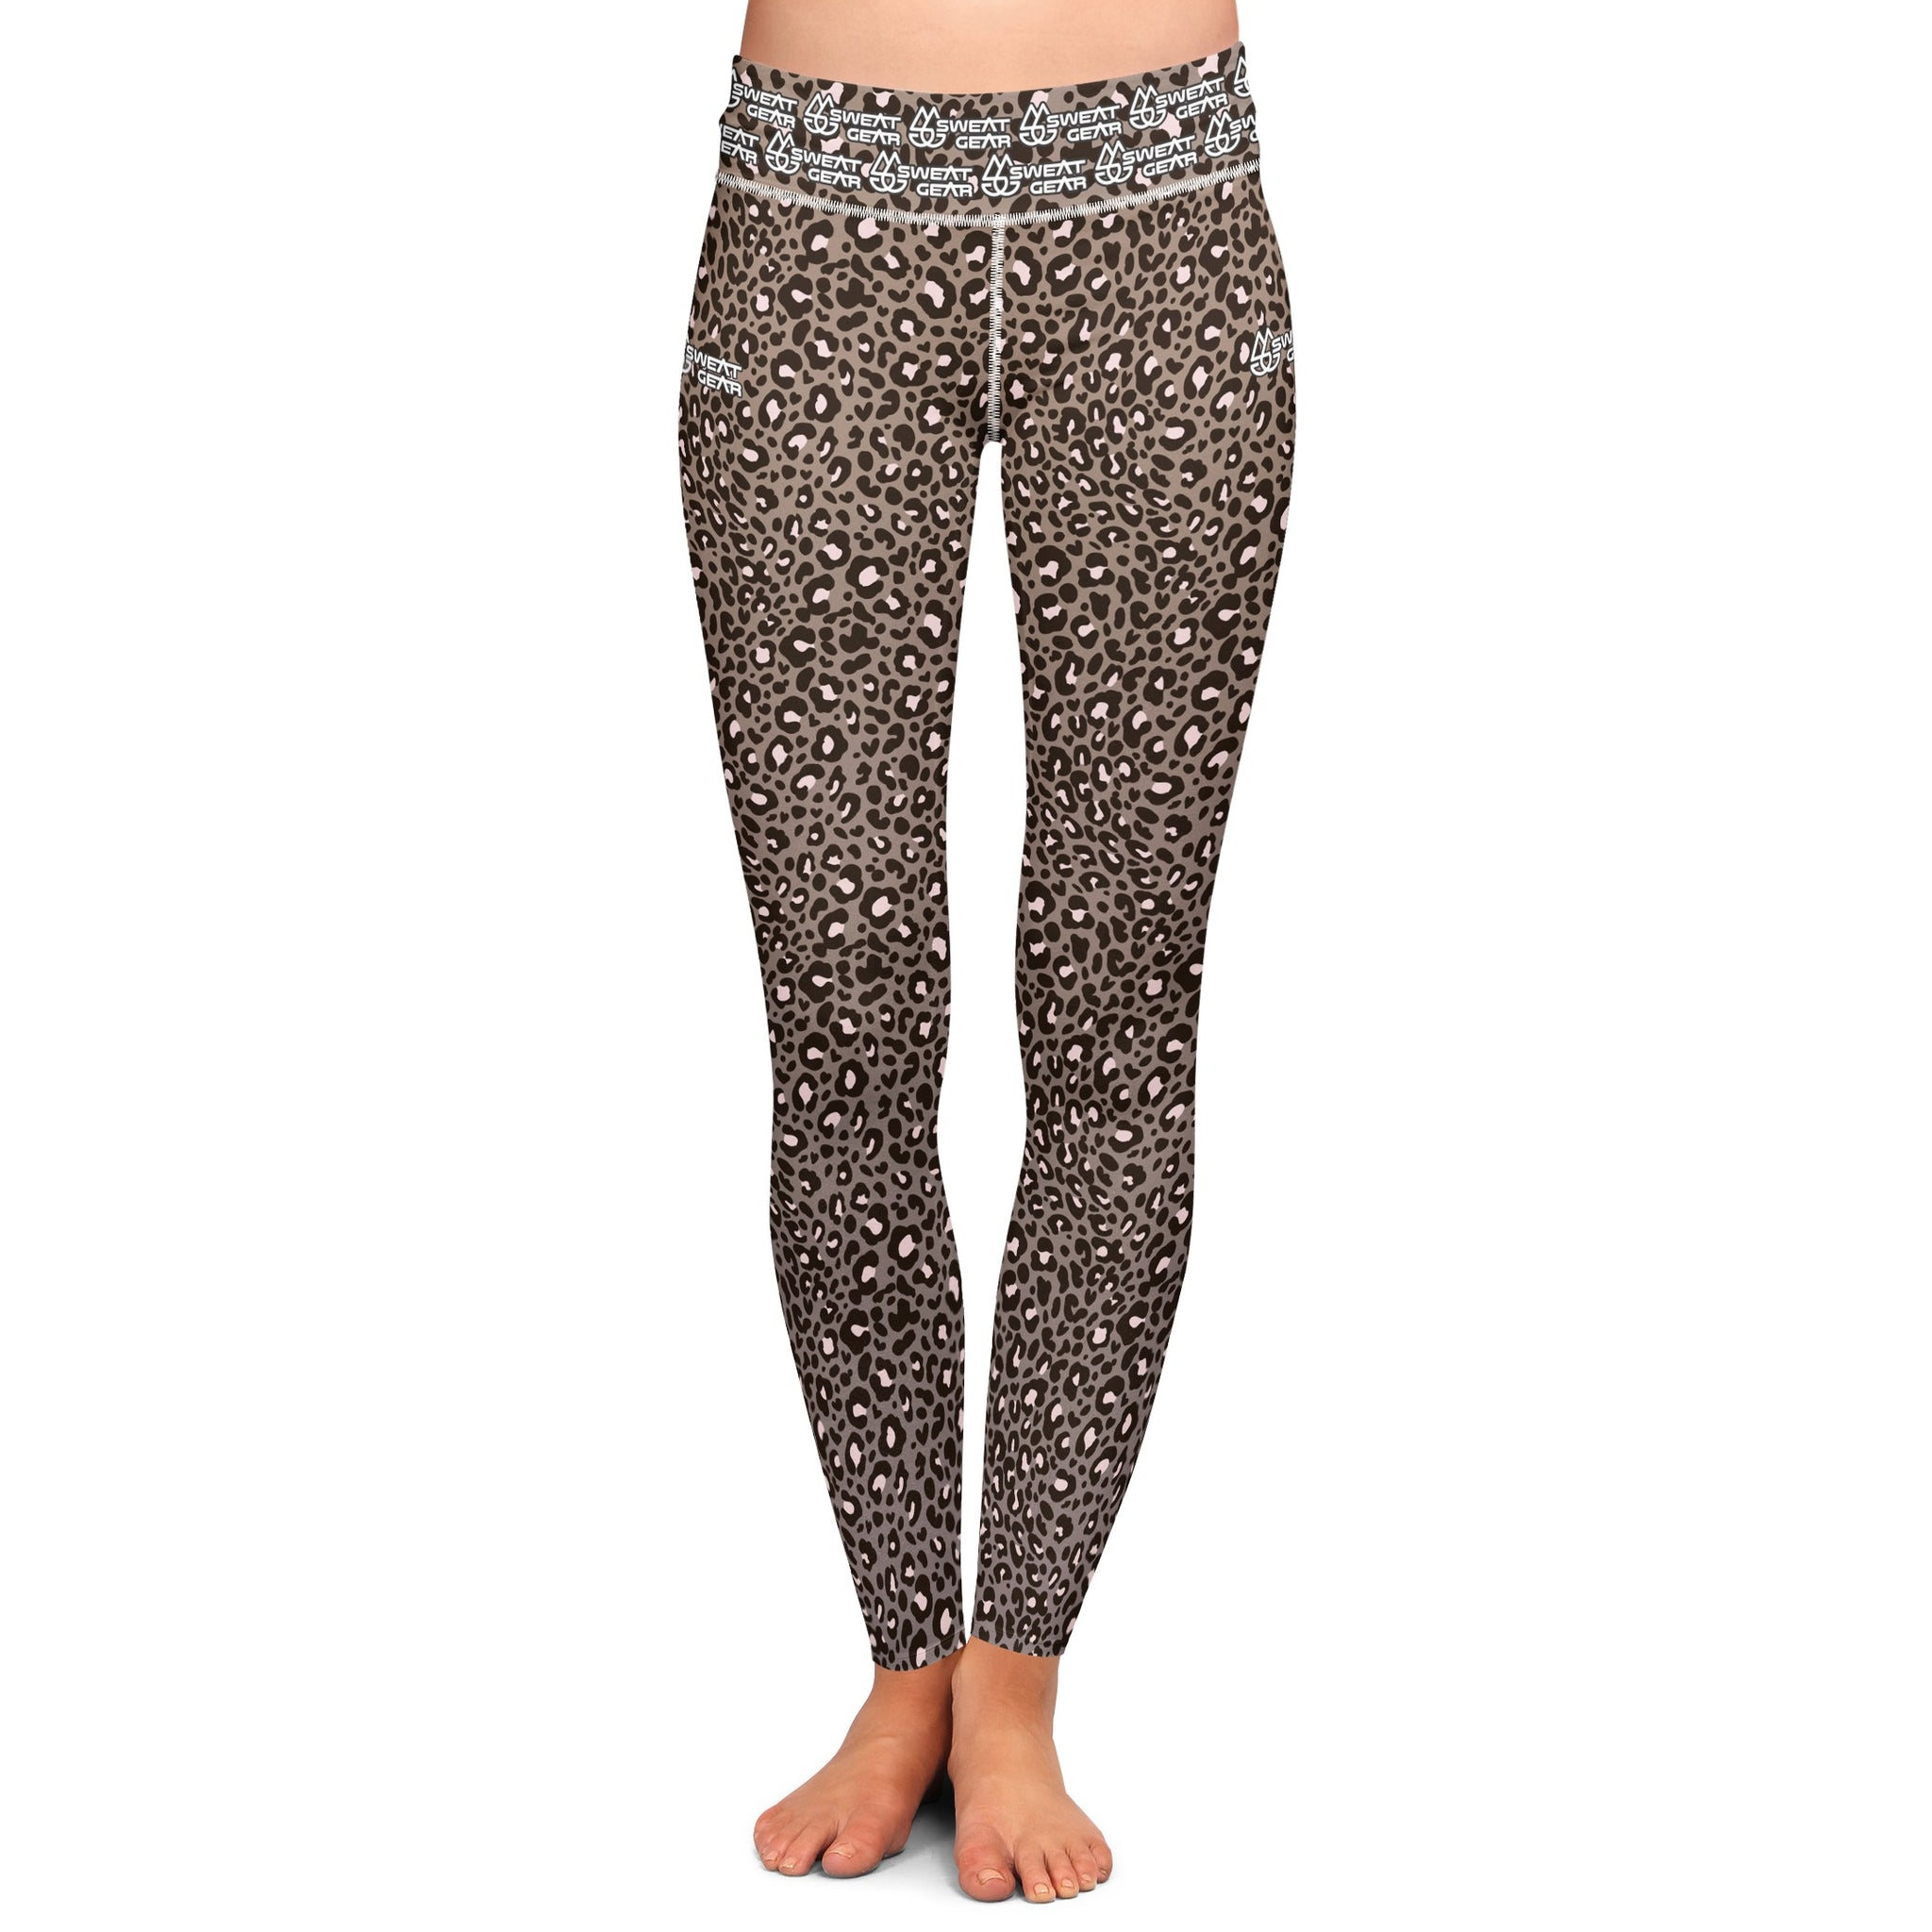 Jaguar Dusk Tight (Sweatgear)